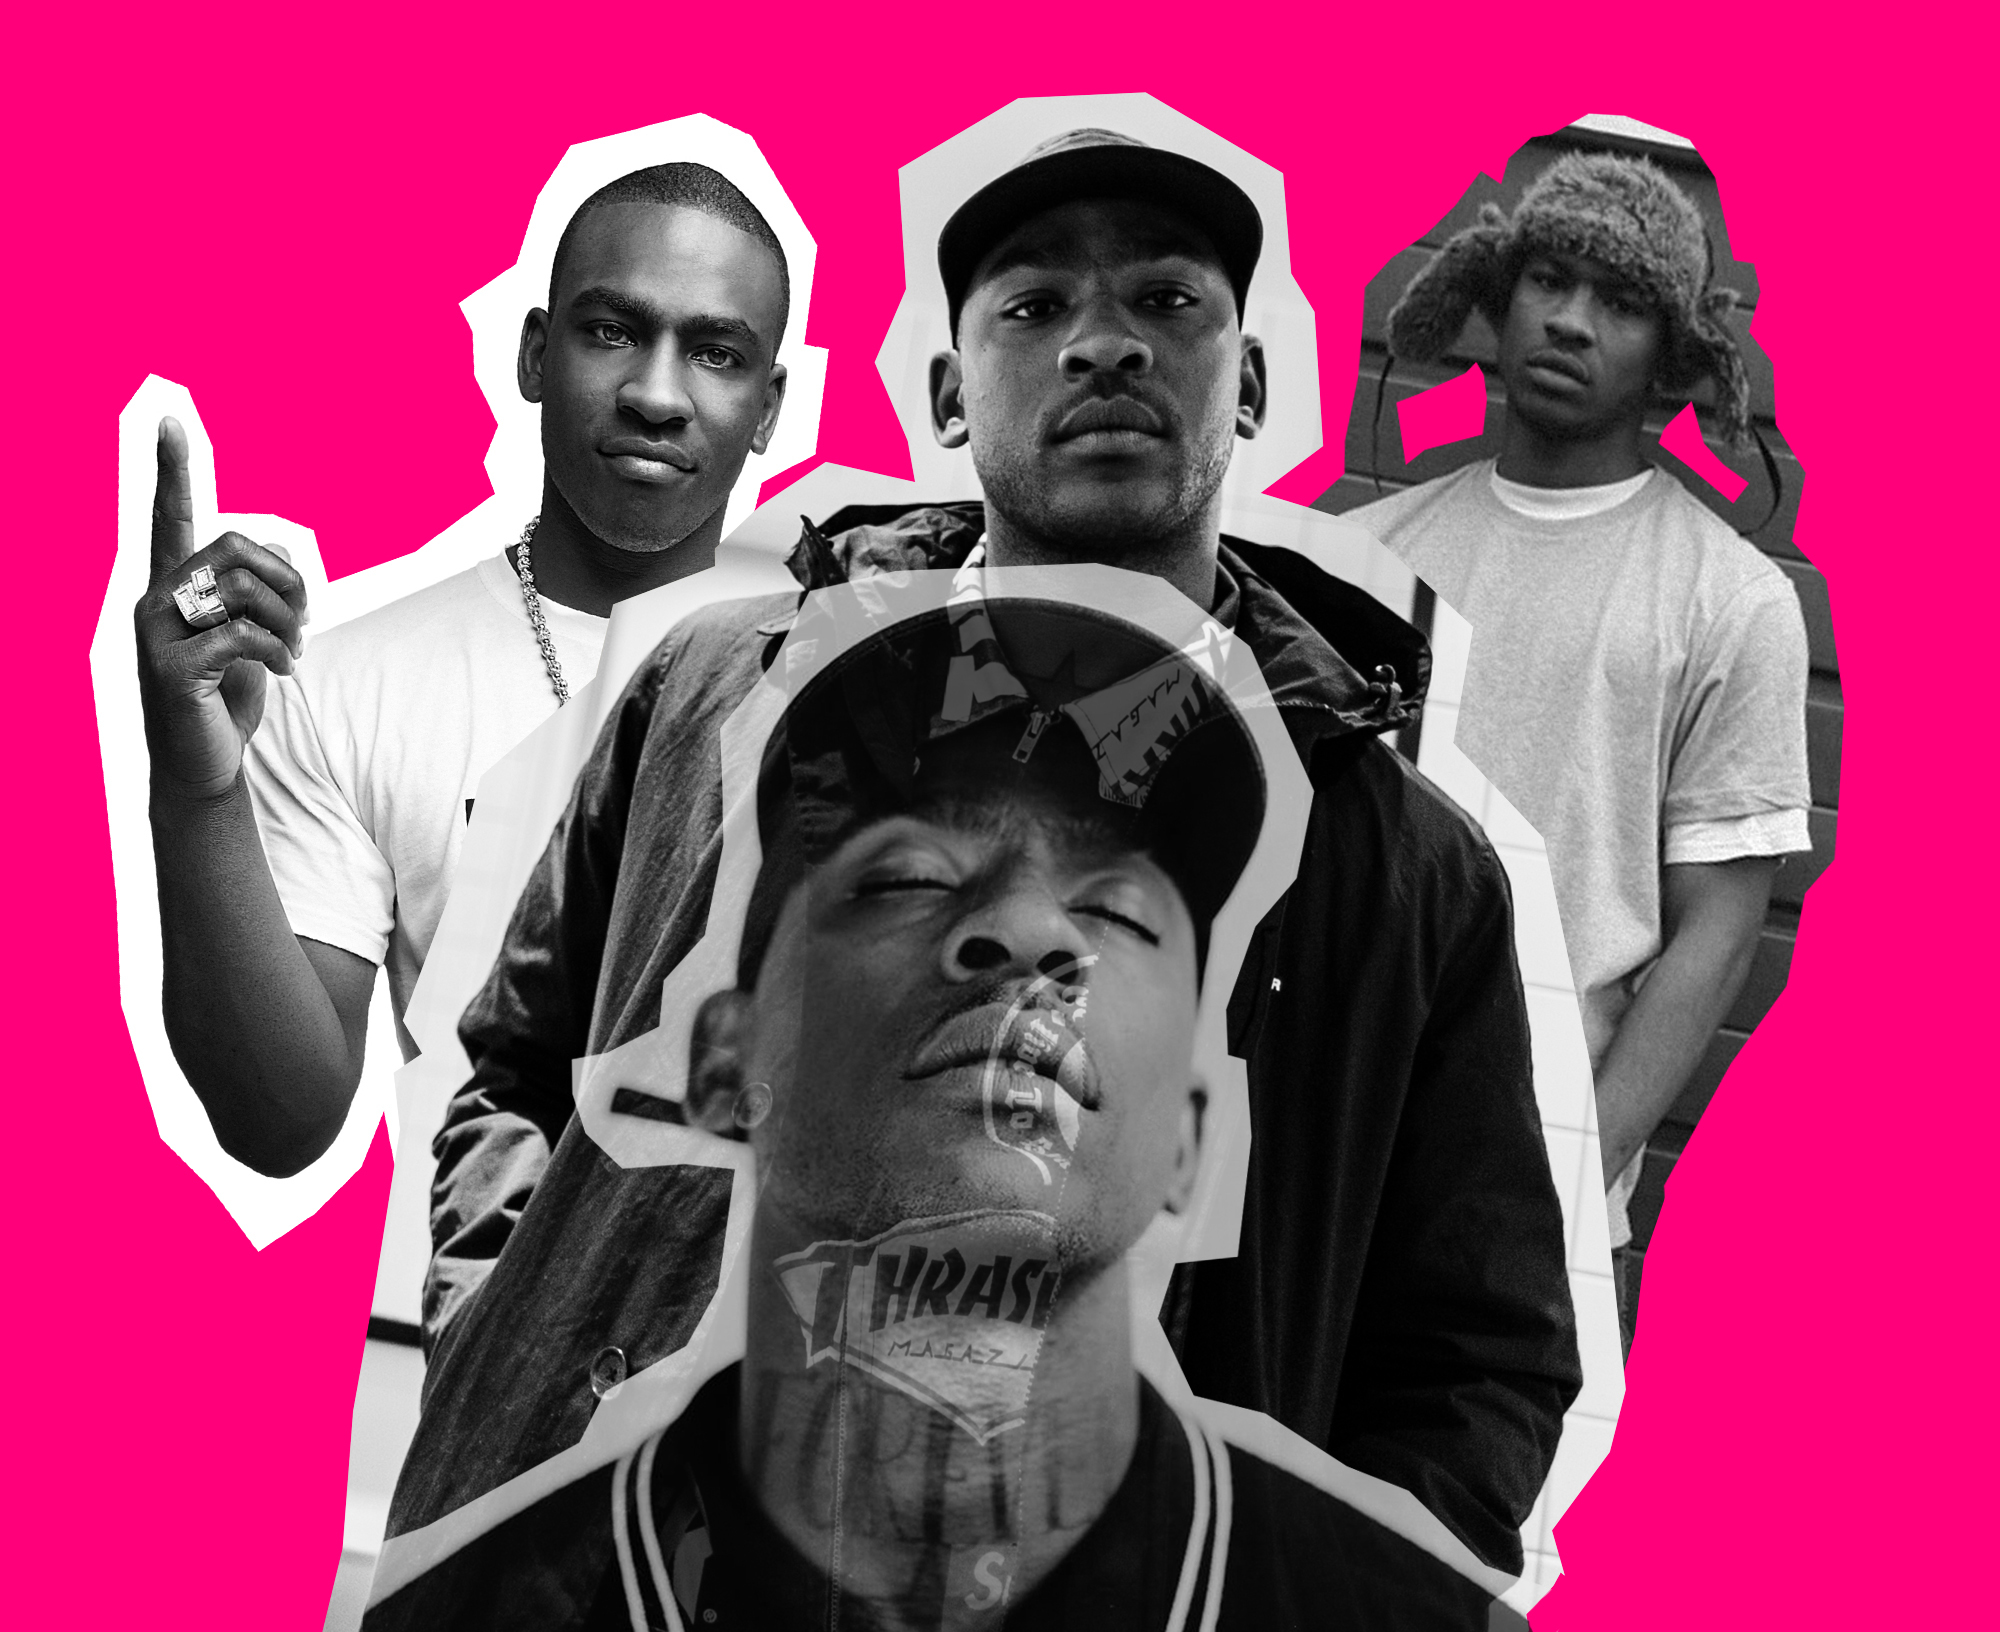 To Understand Skepta's 'Blacklisted' Is To Understand Skepta